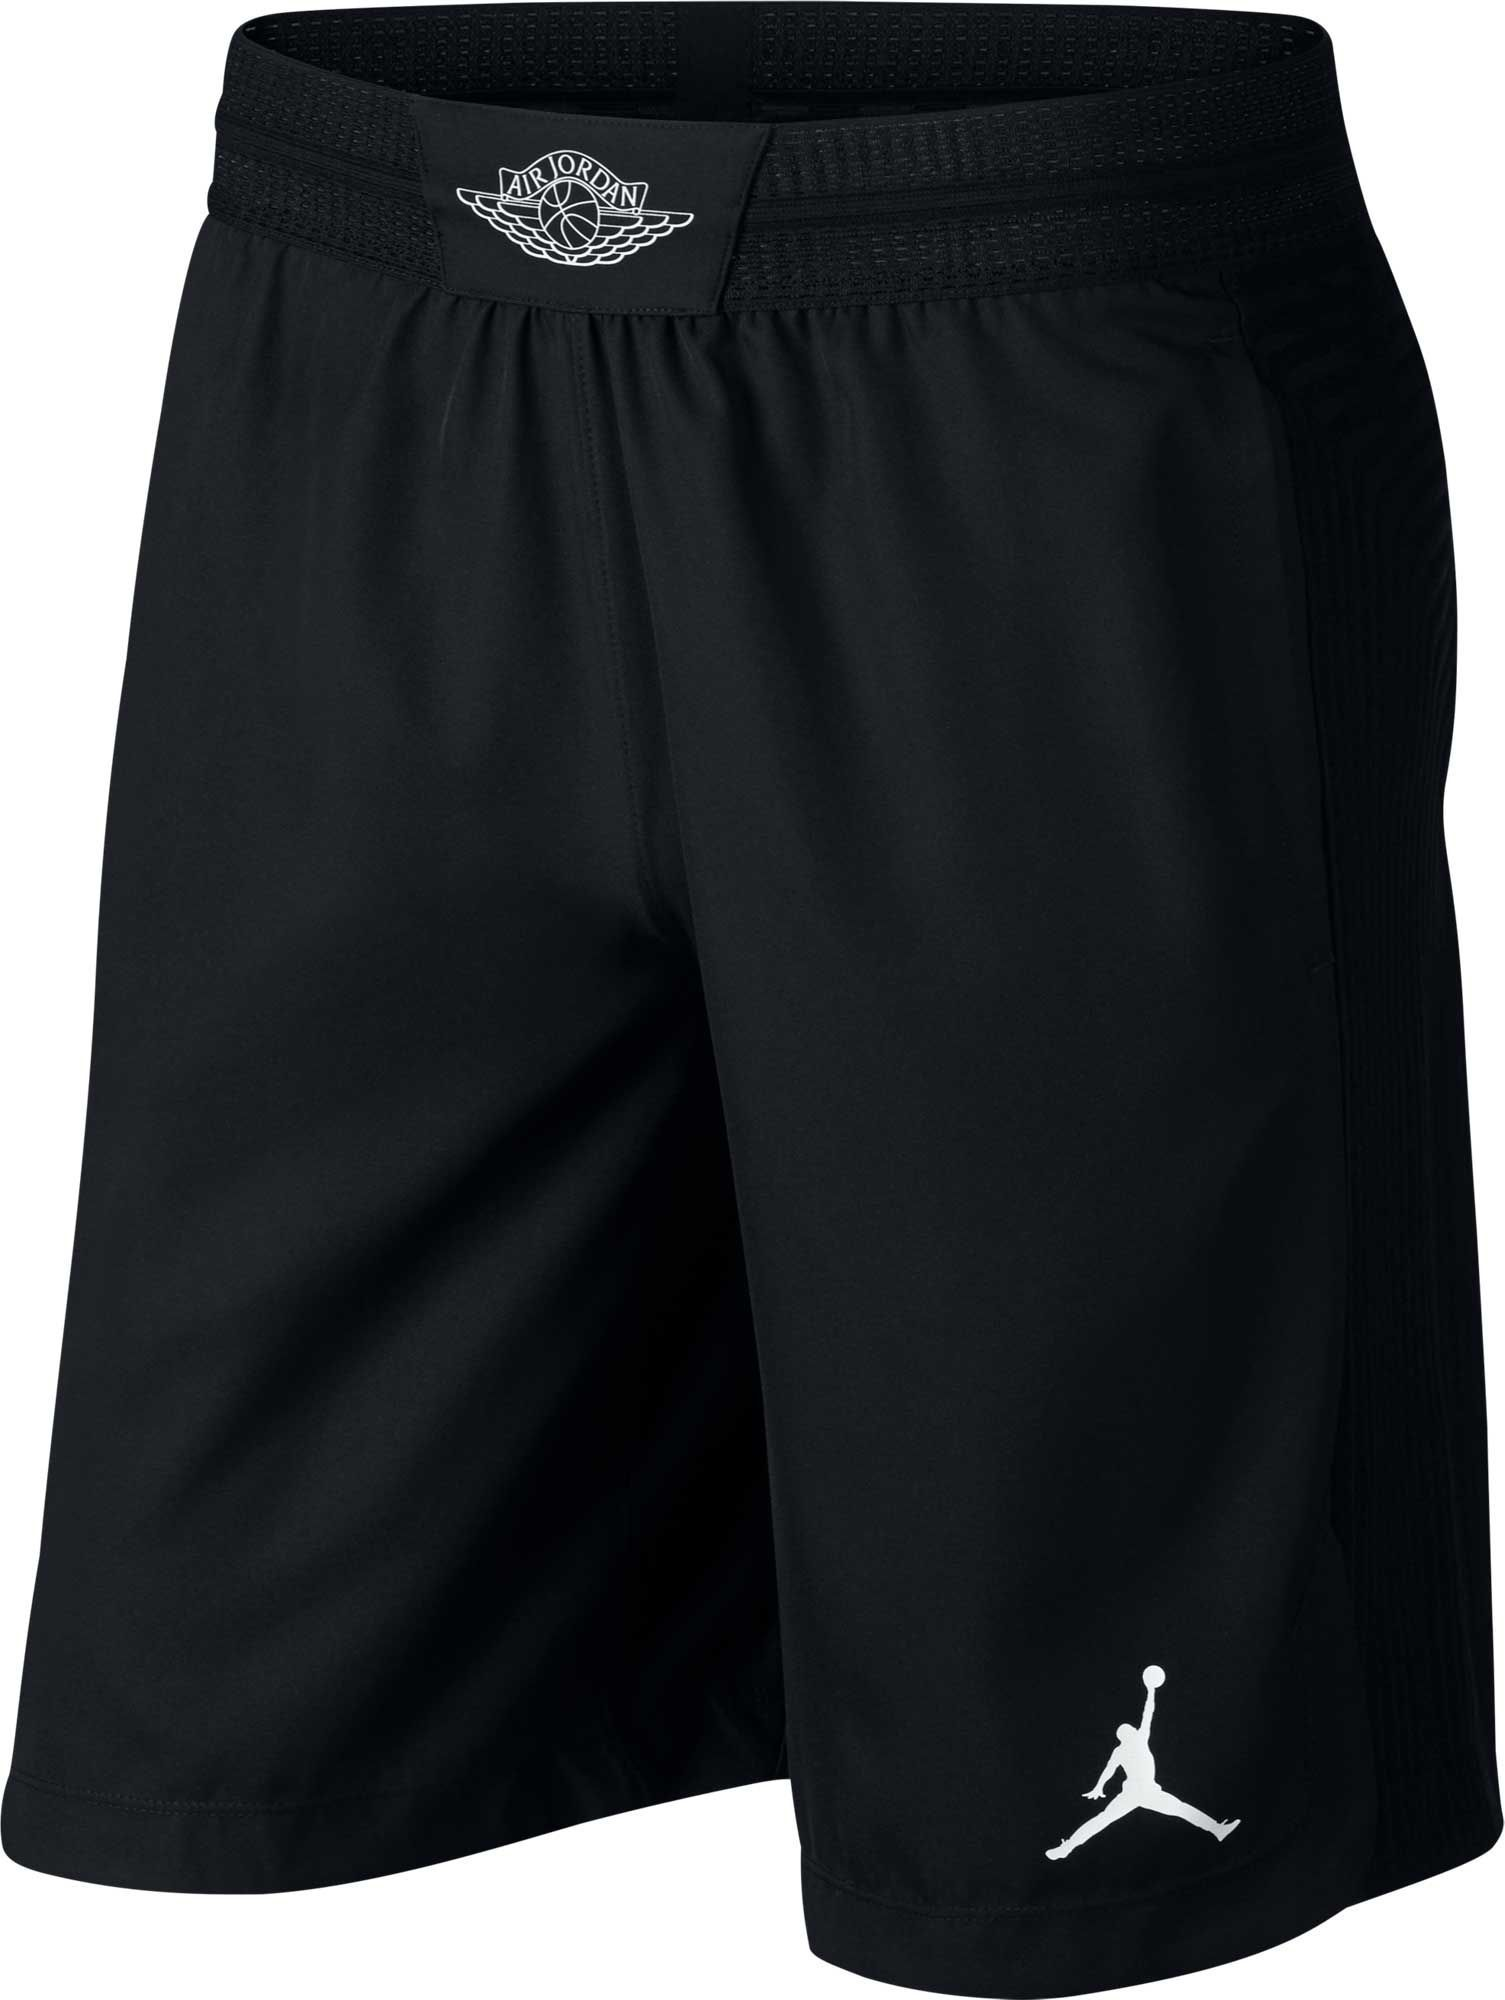 plus récent 0ff6f 3e29d Jordan Men's Ultimate Flight Basketball Shorts | Vêtements ...